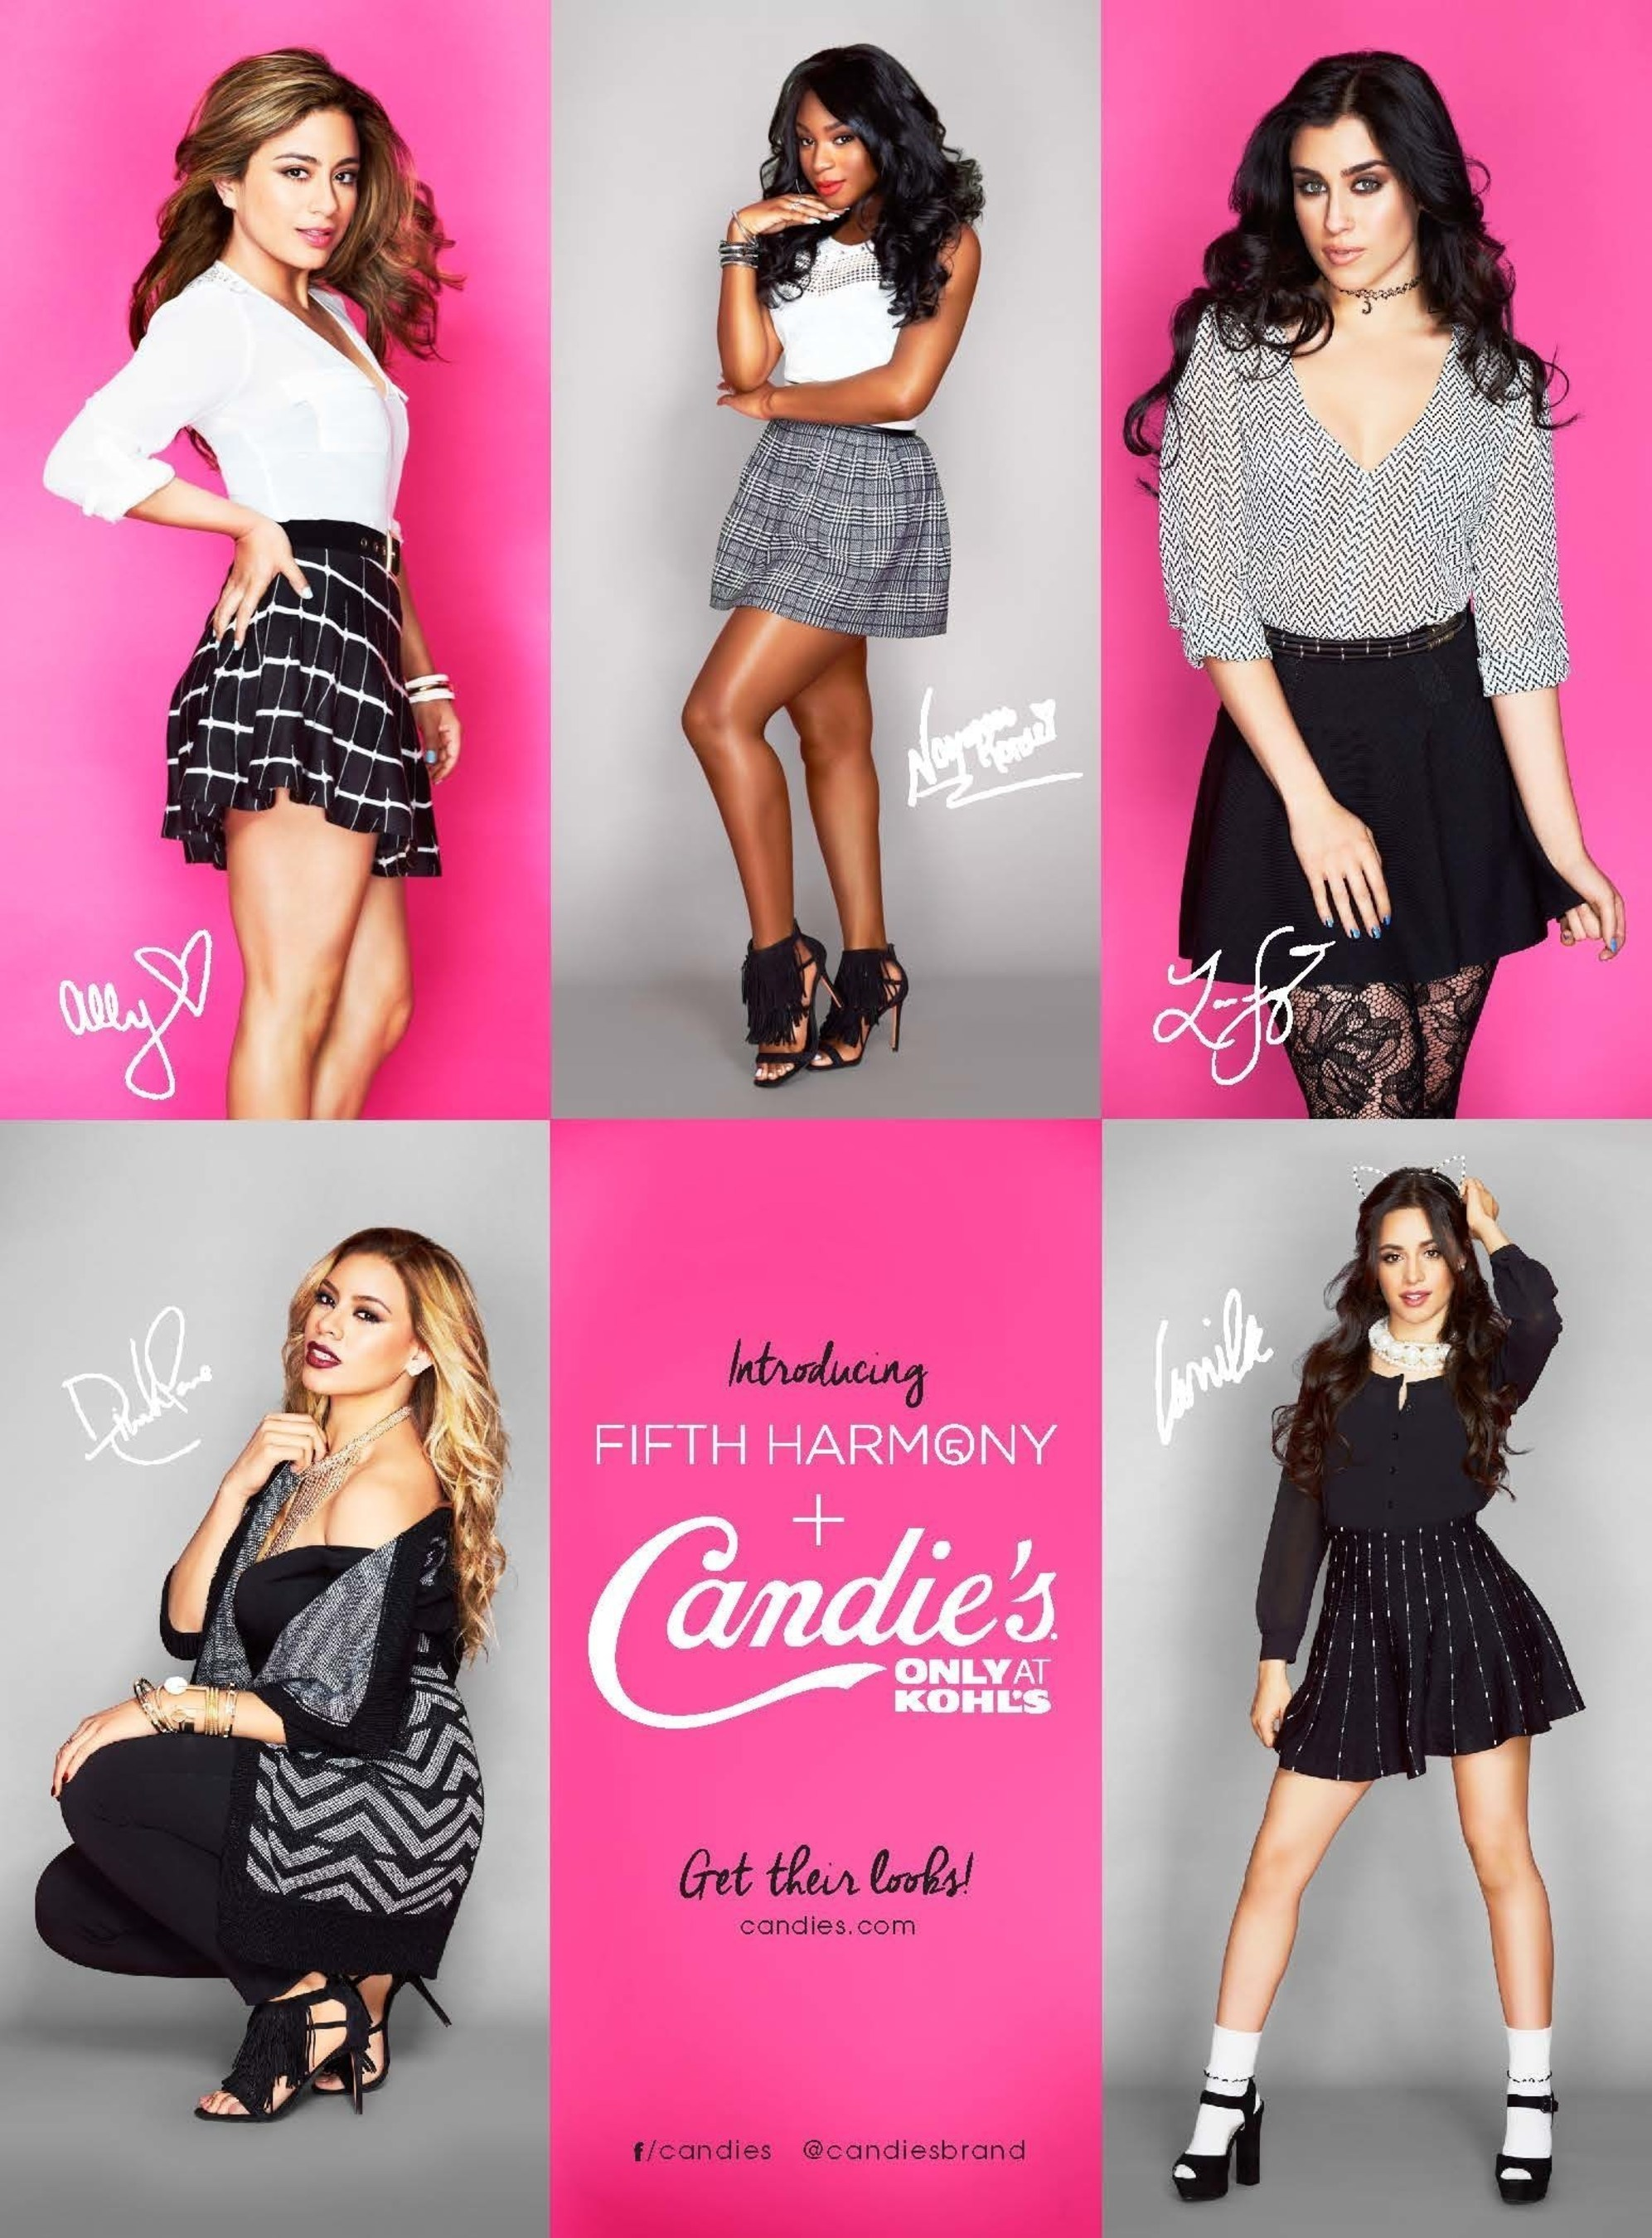 Candie's announces Fifth Harmony as the new face of the brand